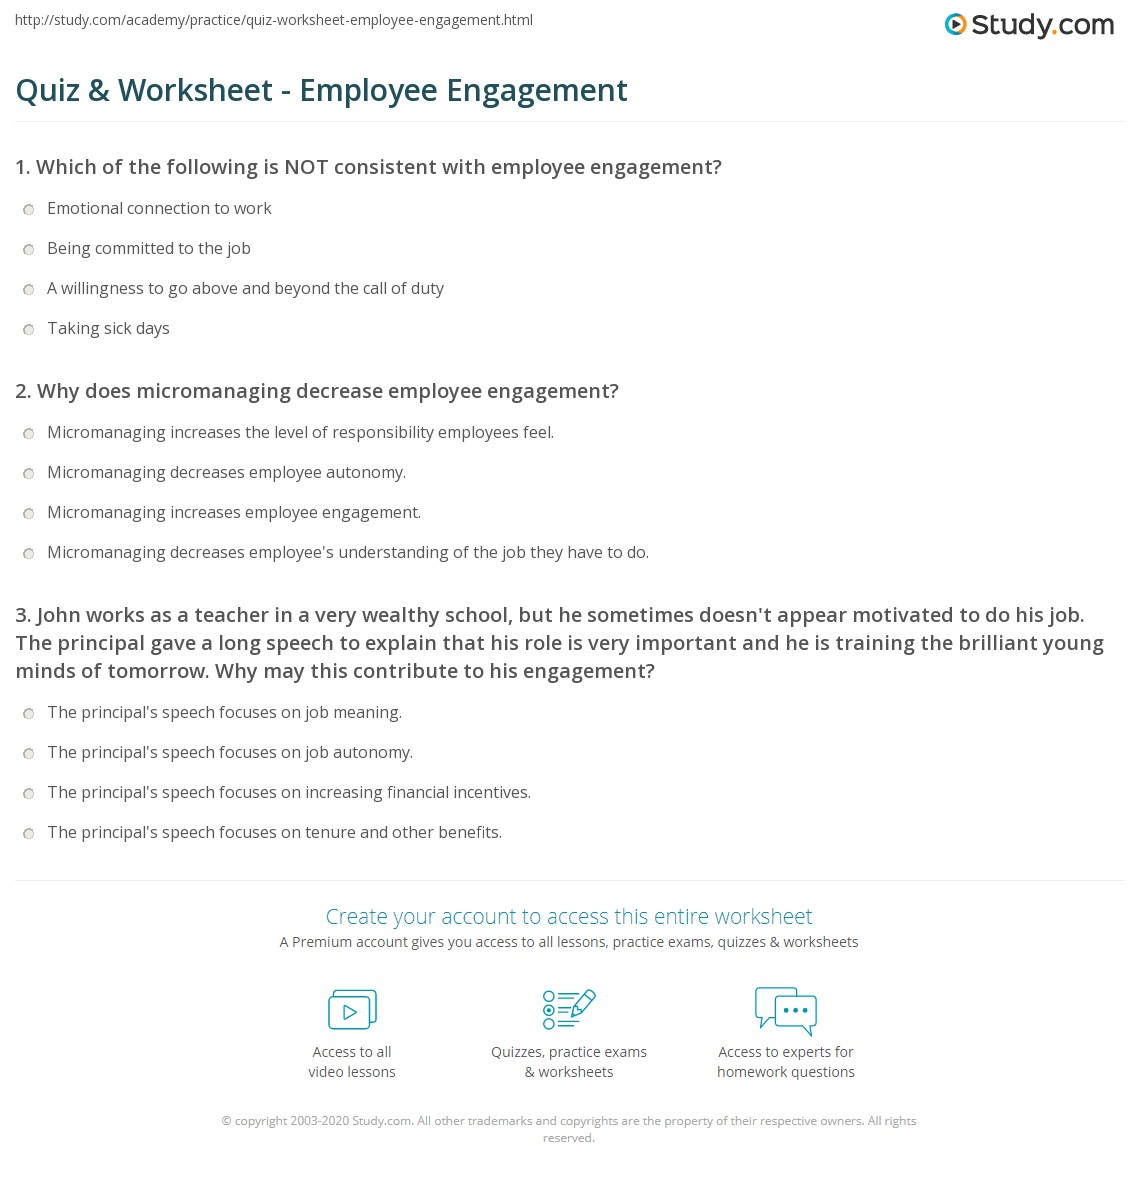 quiz & worksheet - employee engagement | study